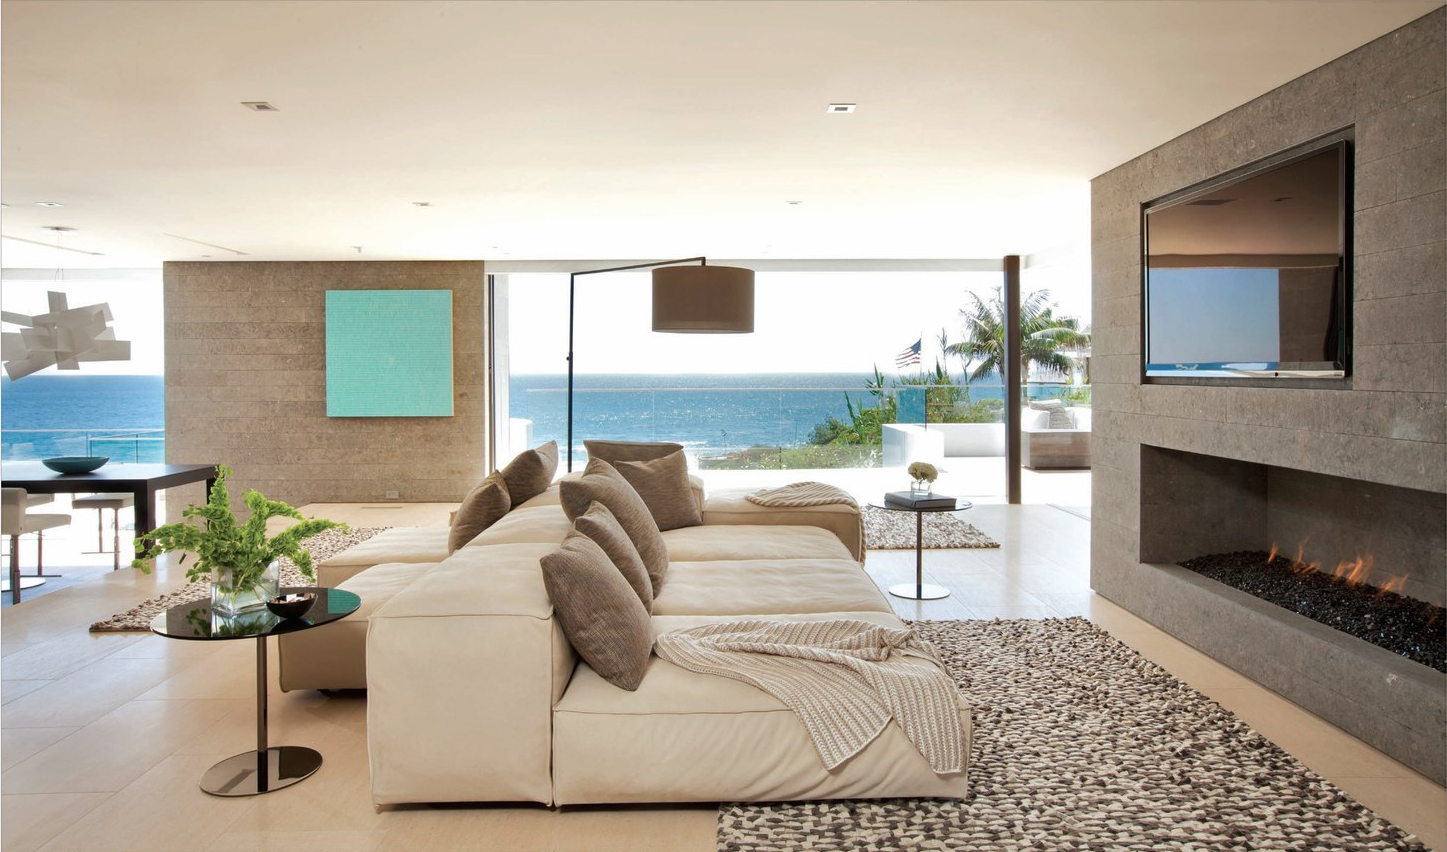 Beach theme minimalist living room decorations image 2 of 10